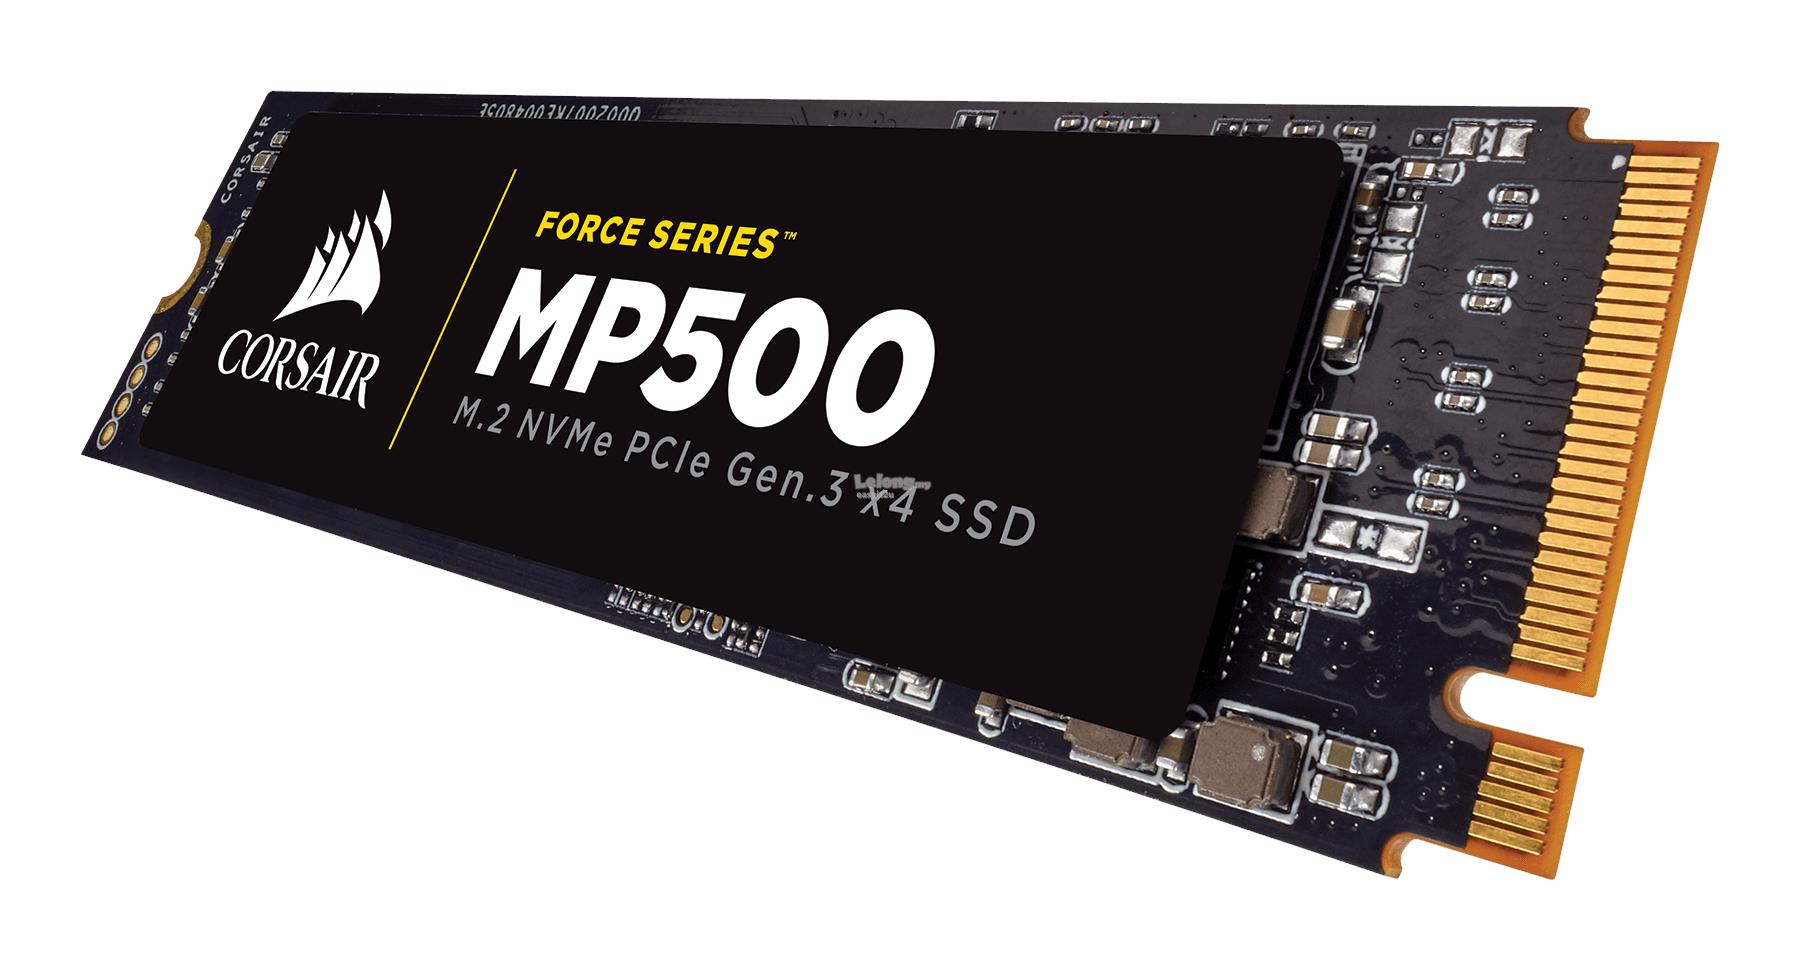 CORSAIR FORCE SERIES MP500 240GB M.2 SOLID STATE DRIVE